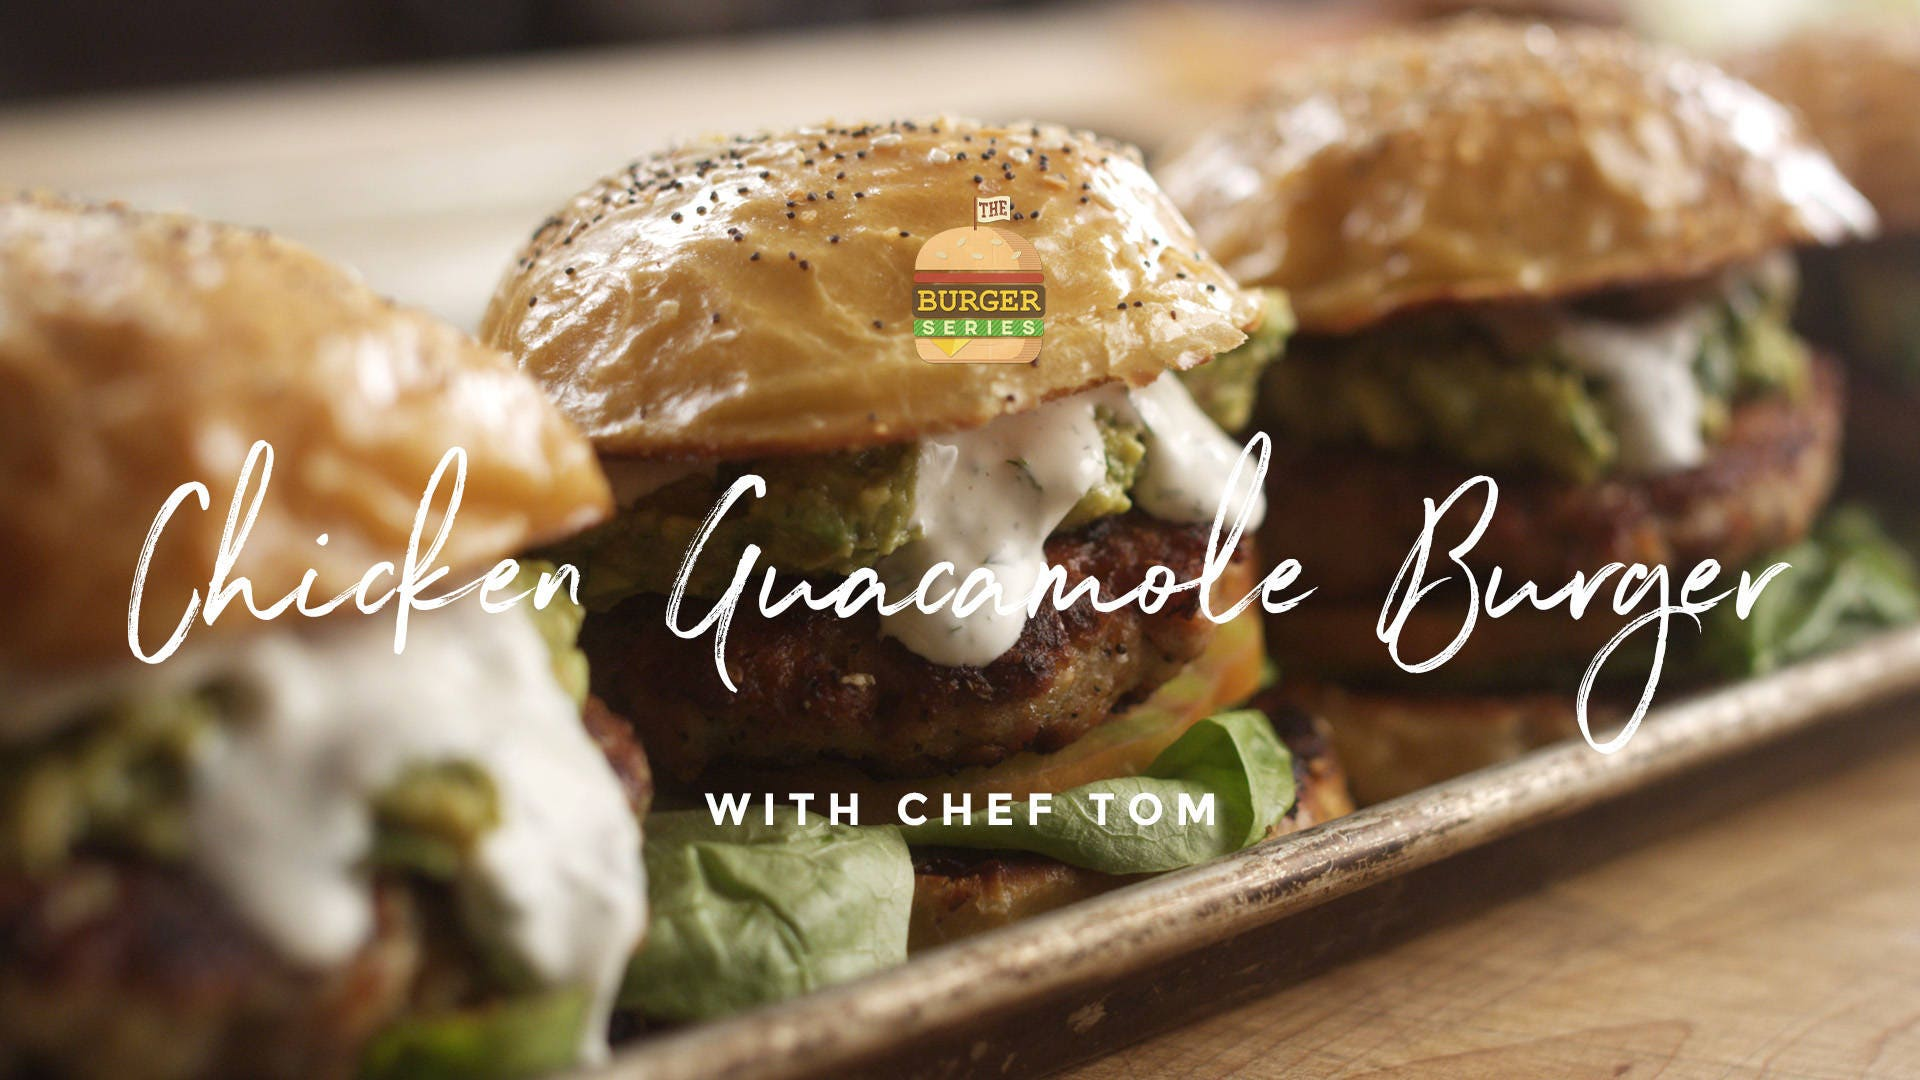 How to make Chicken Guacamole Burgers